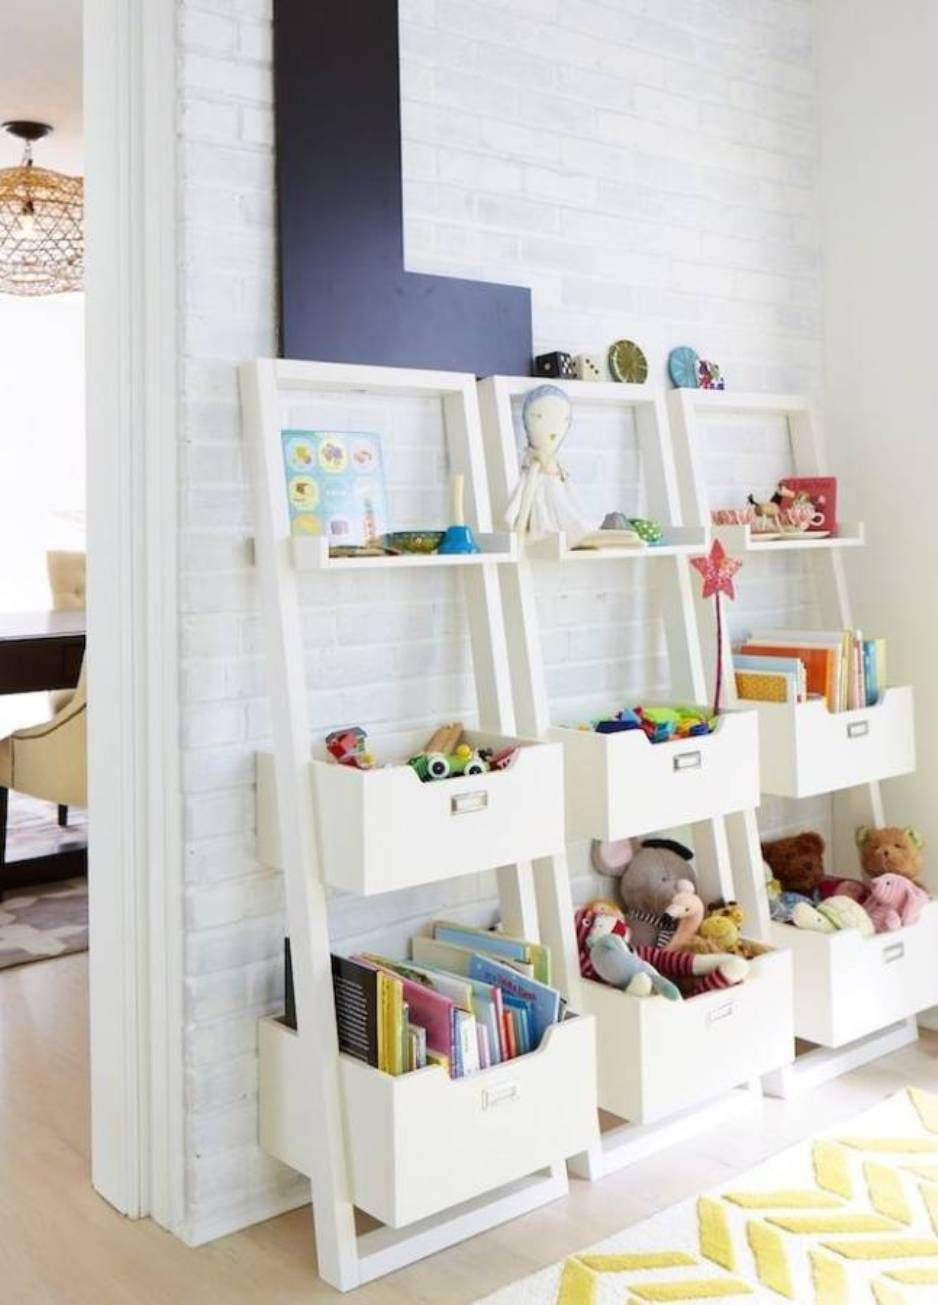 Toy Storage Organizer Ideas: 38+ Samples Http://freshoom.com/1366 Toy  Storage Organizer Ideas 38 Amazing Samples/